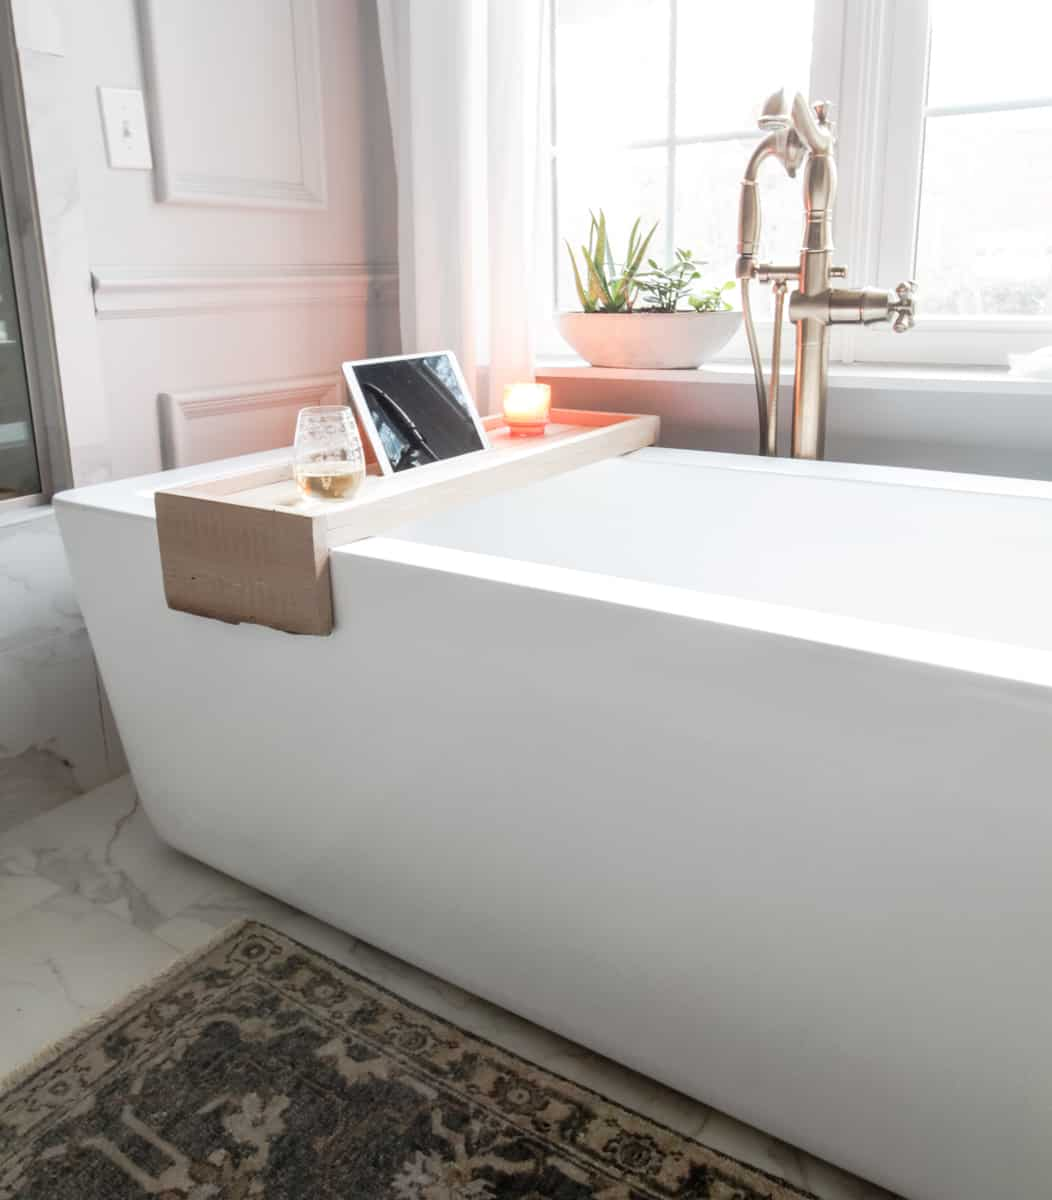 DIY Bathtub Tray with Reclaimed Wood · DeeplySouthernHome